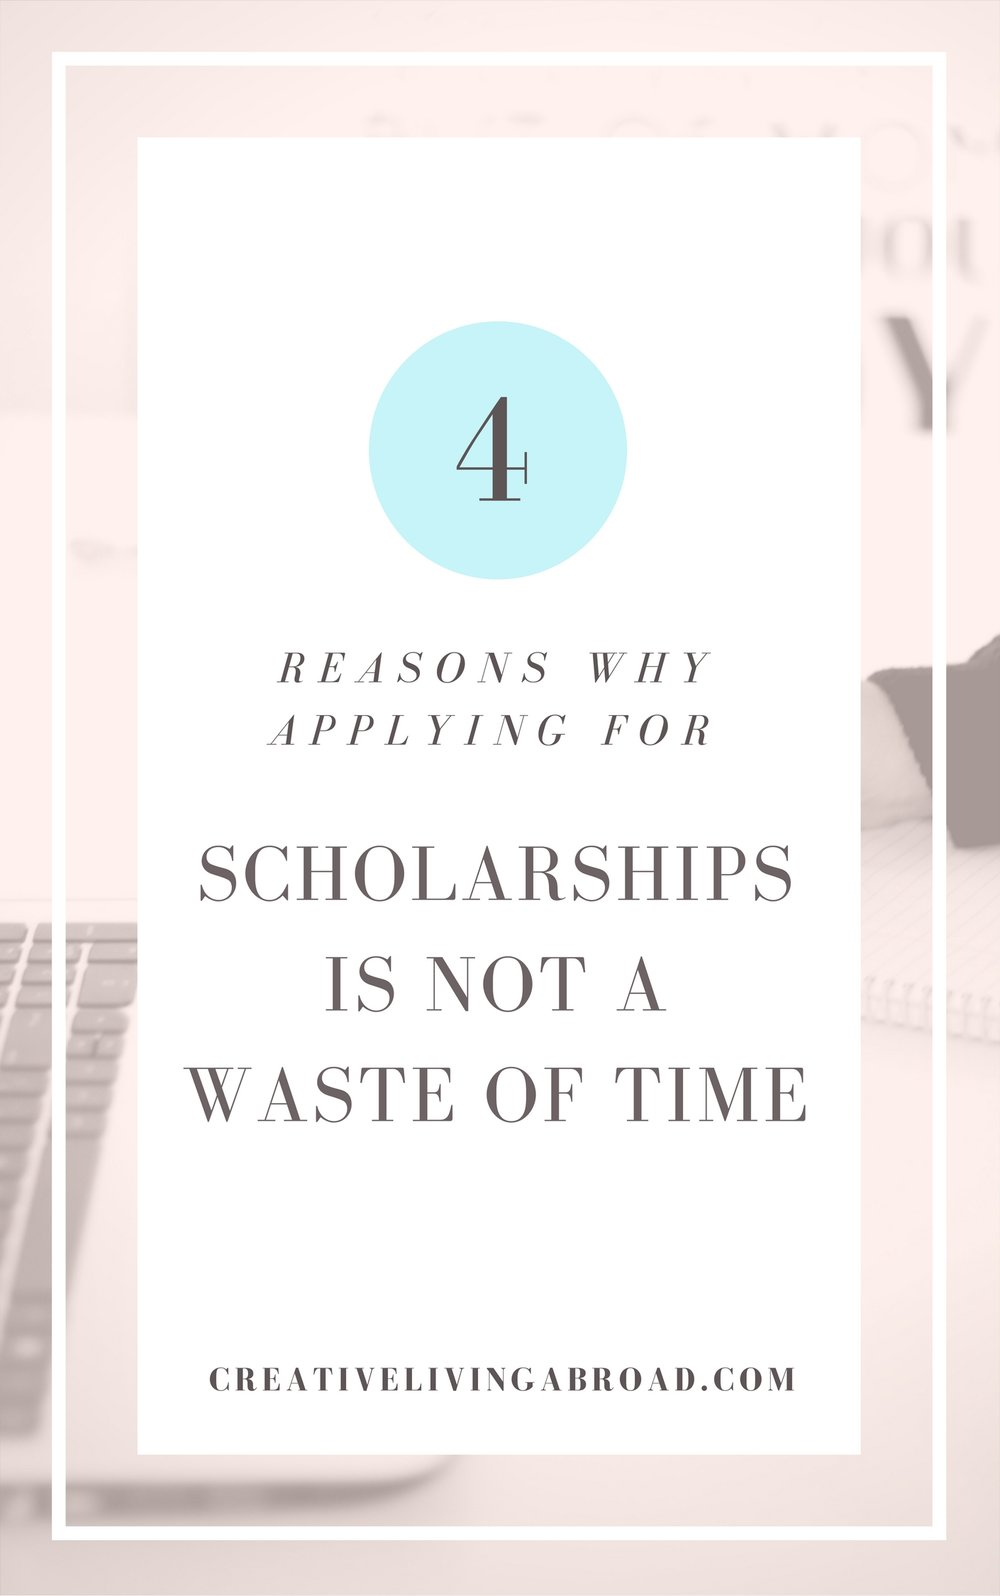 why applying for scholarships is not a waste of time